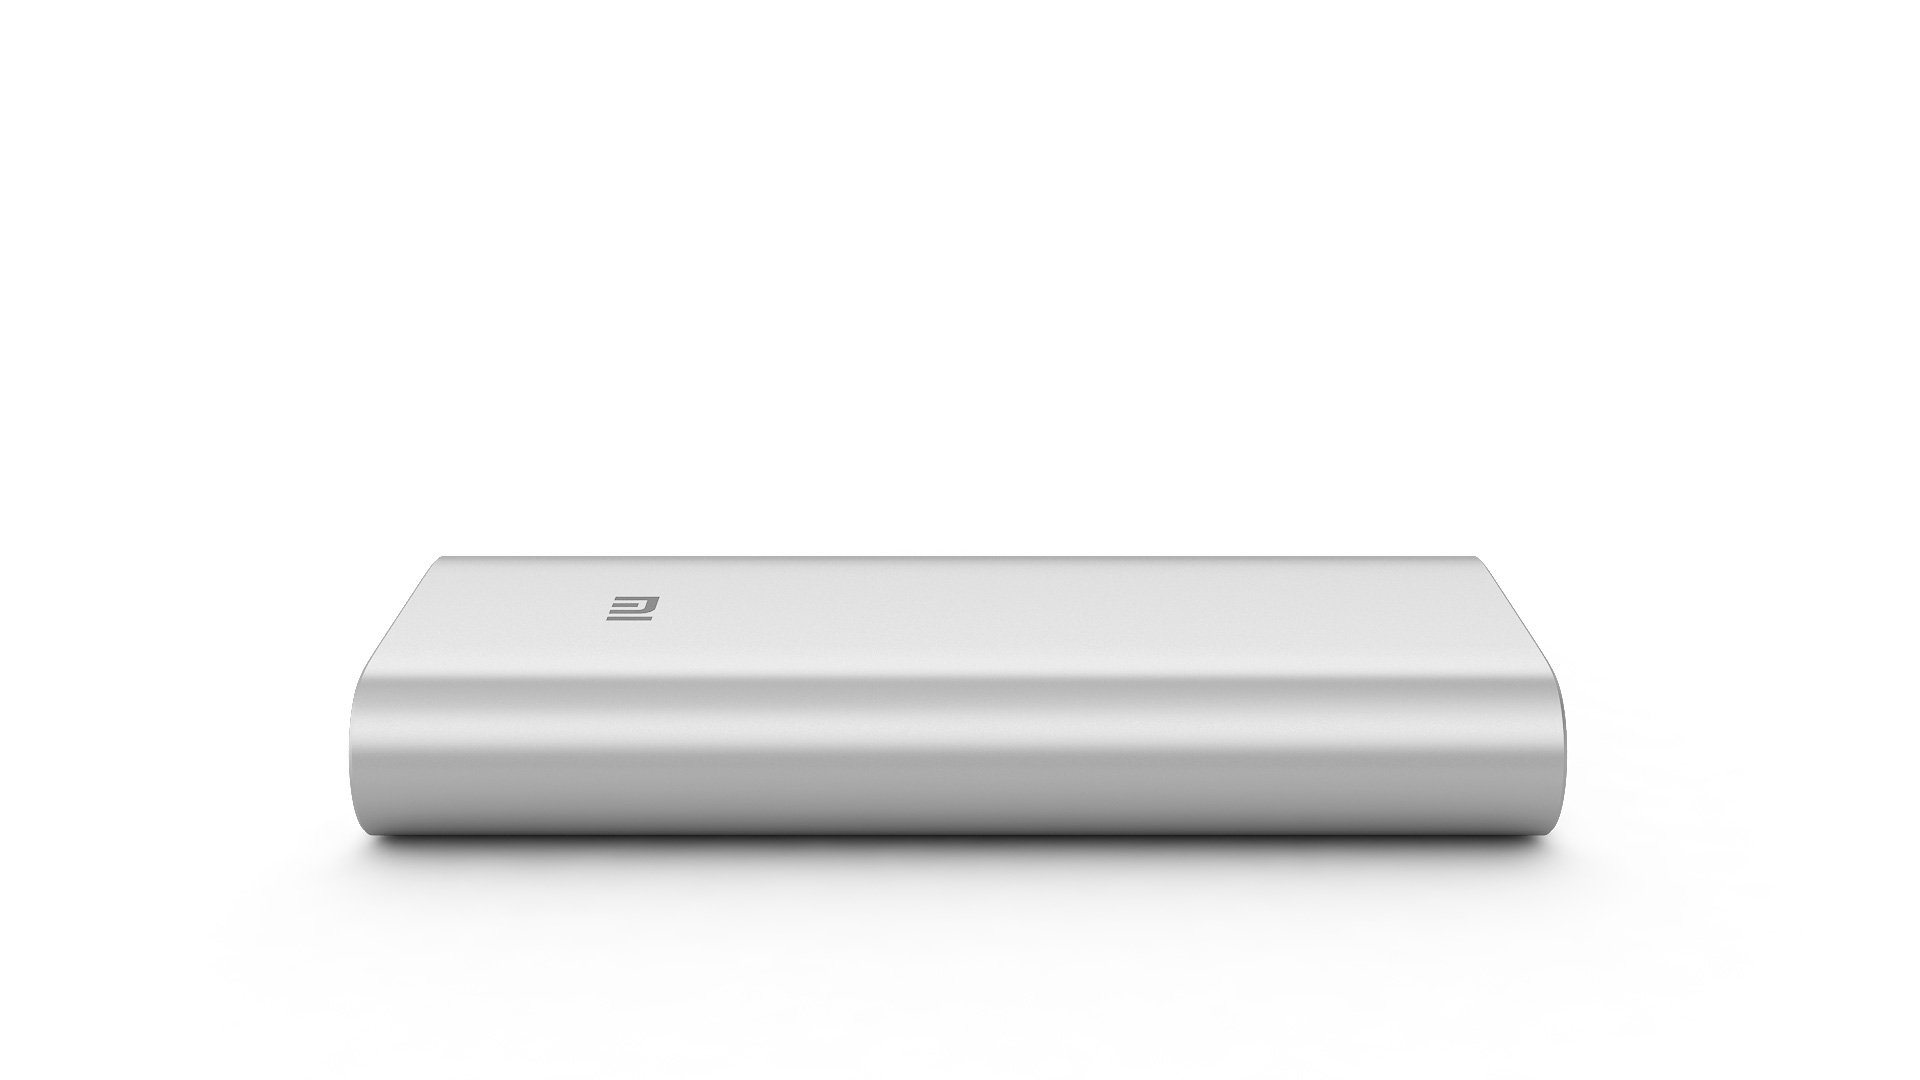 Mi Power Bank 16000mah Mi Global Home